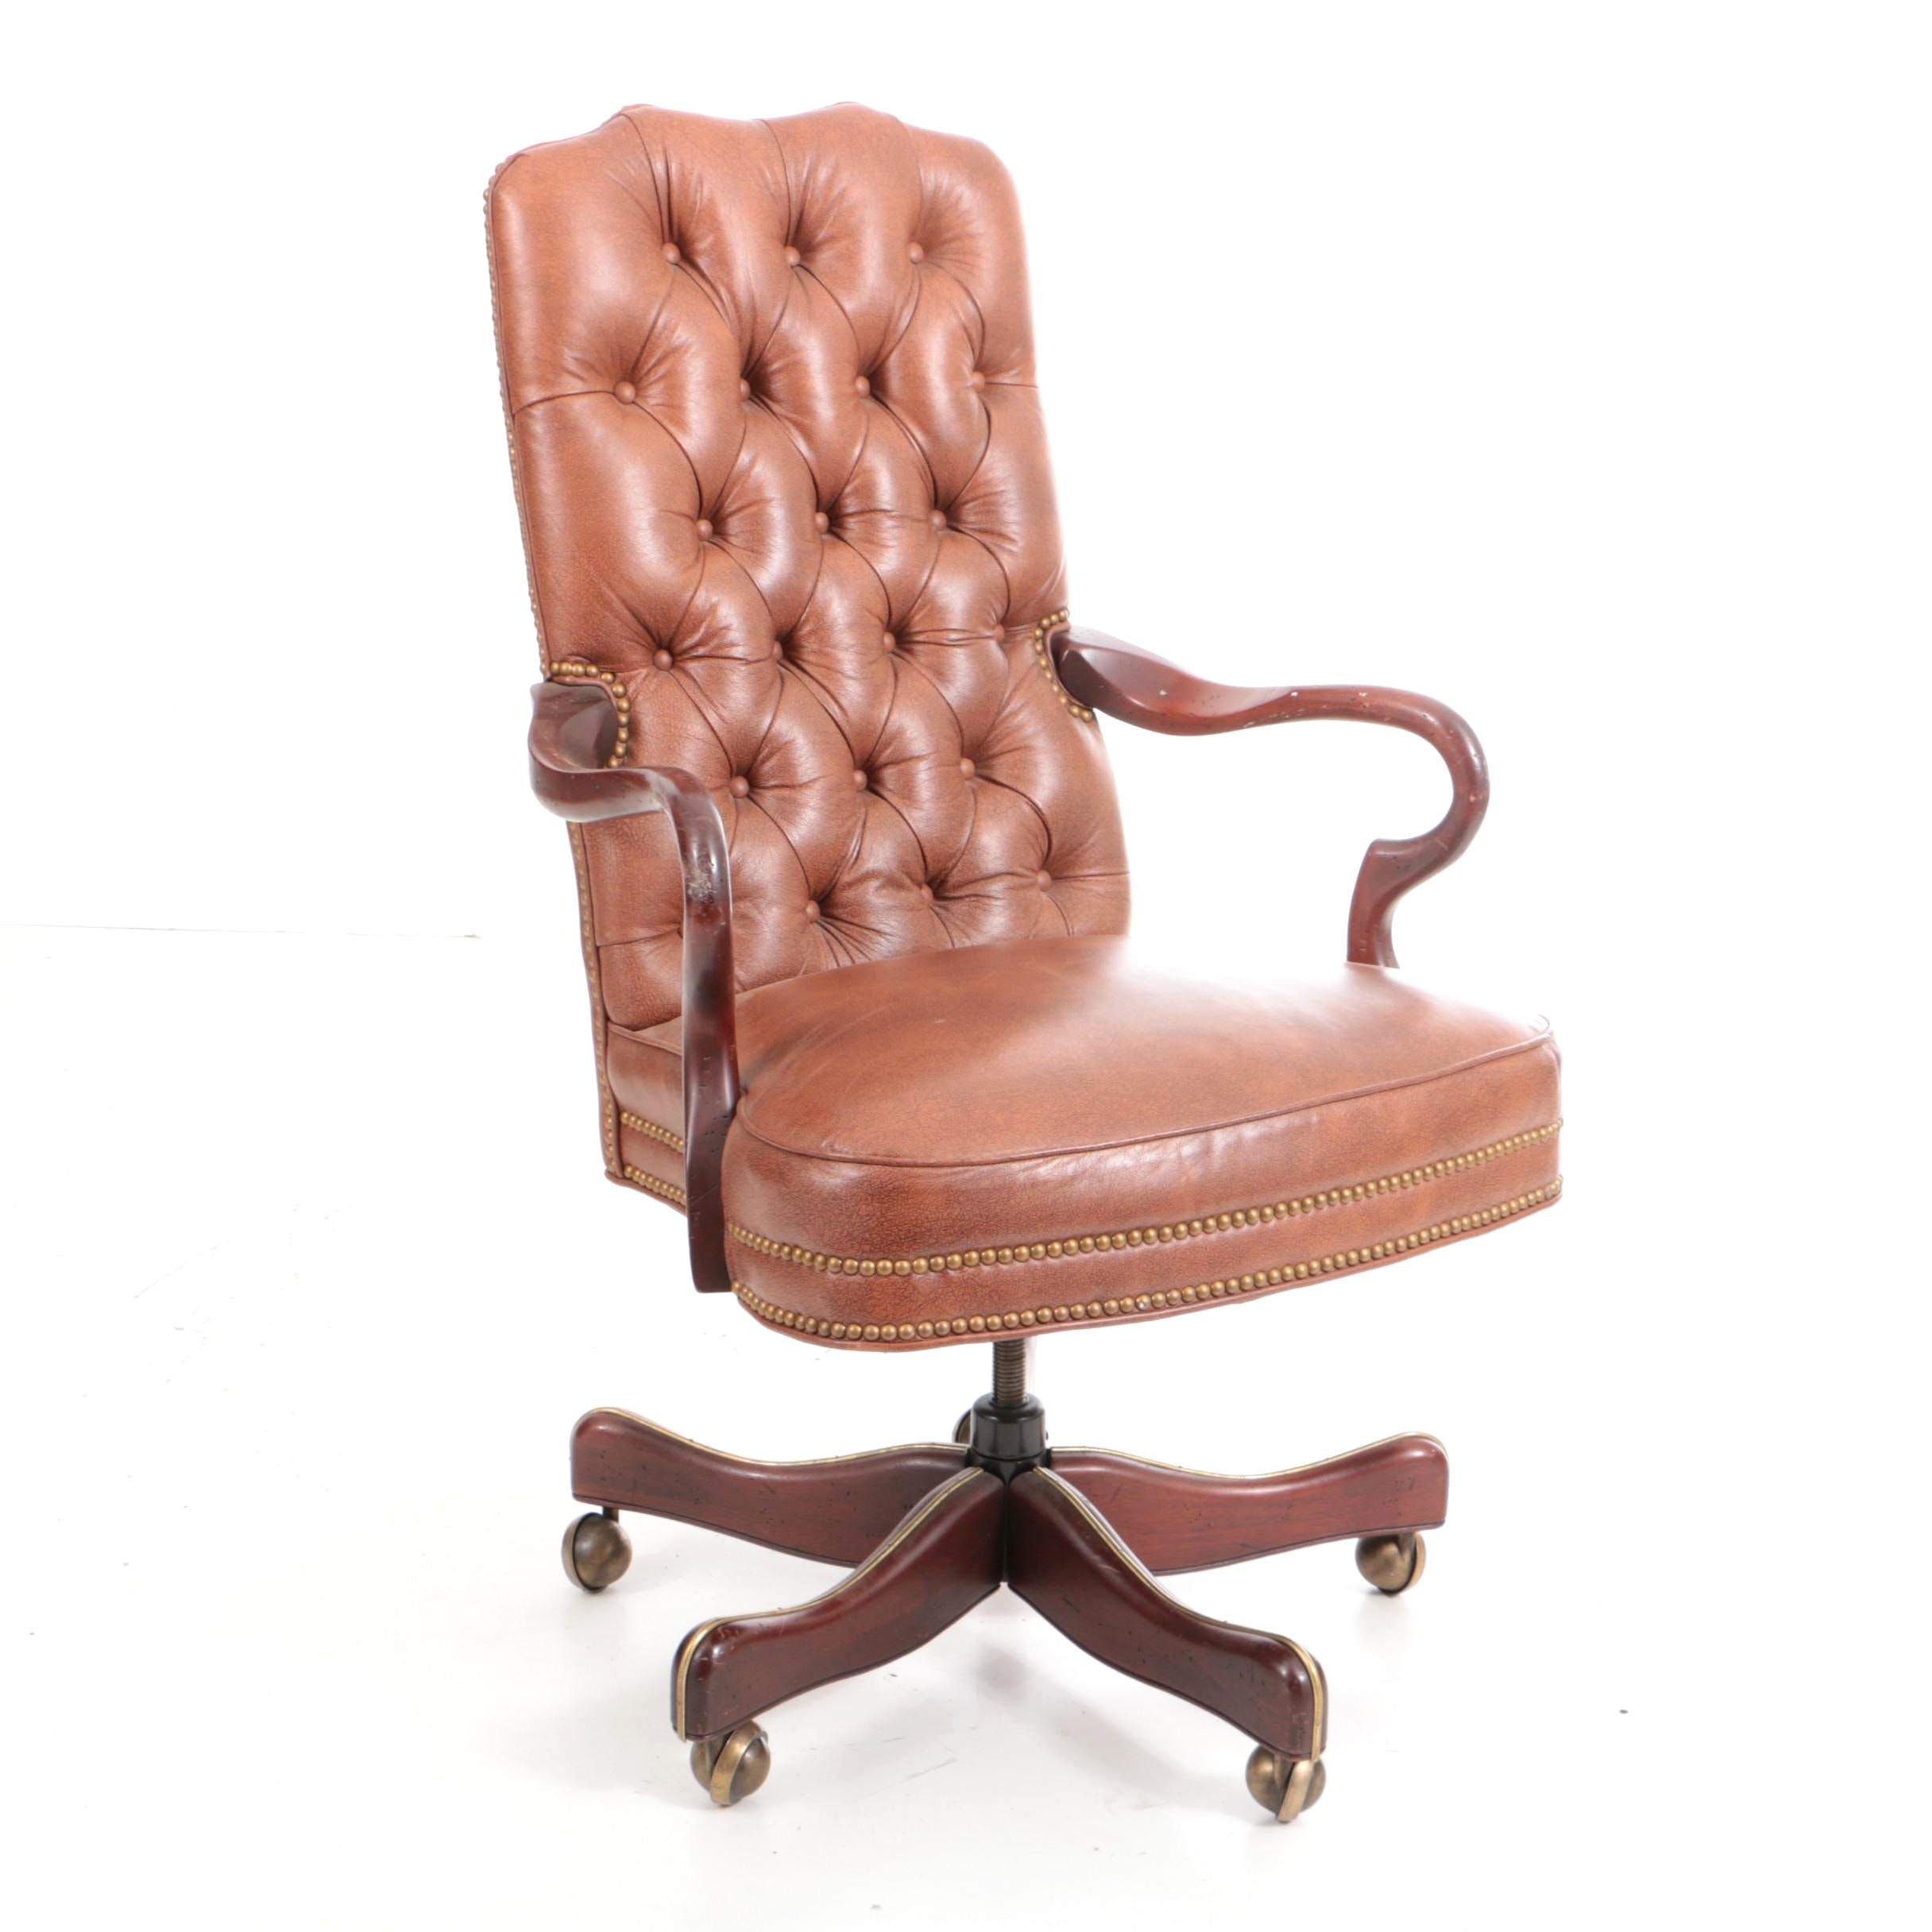 The Charles Stewart Company Tufted and Beaded Leather Office Chair